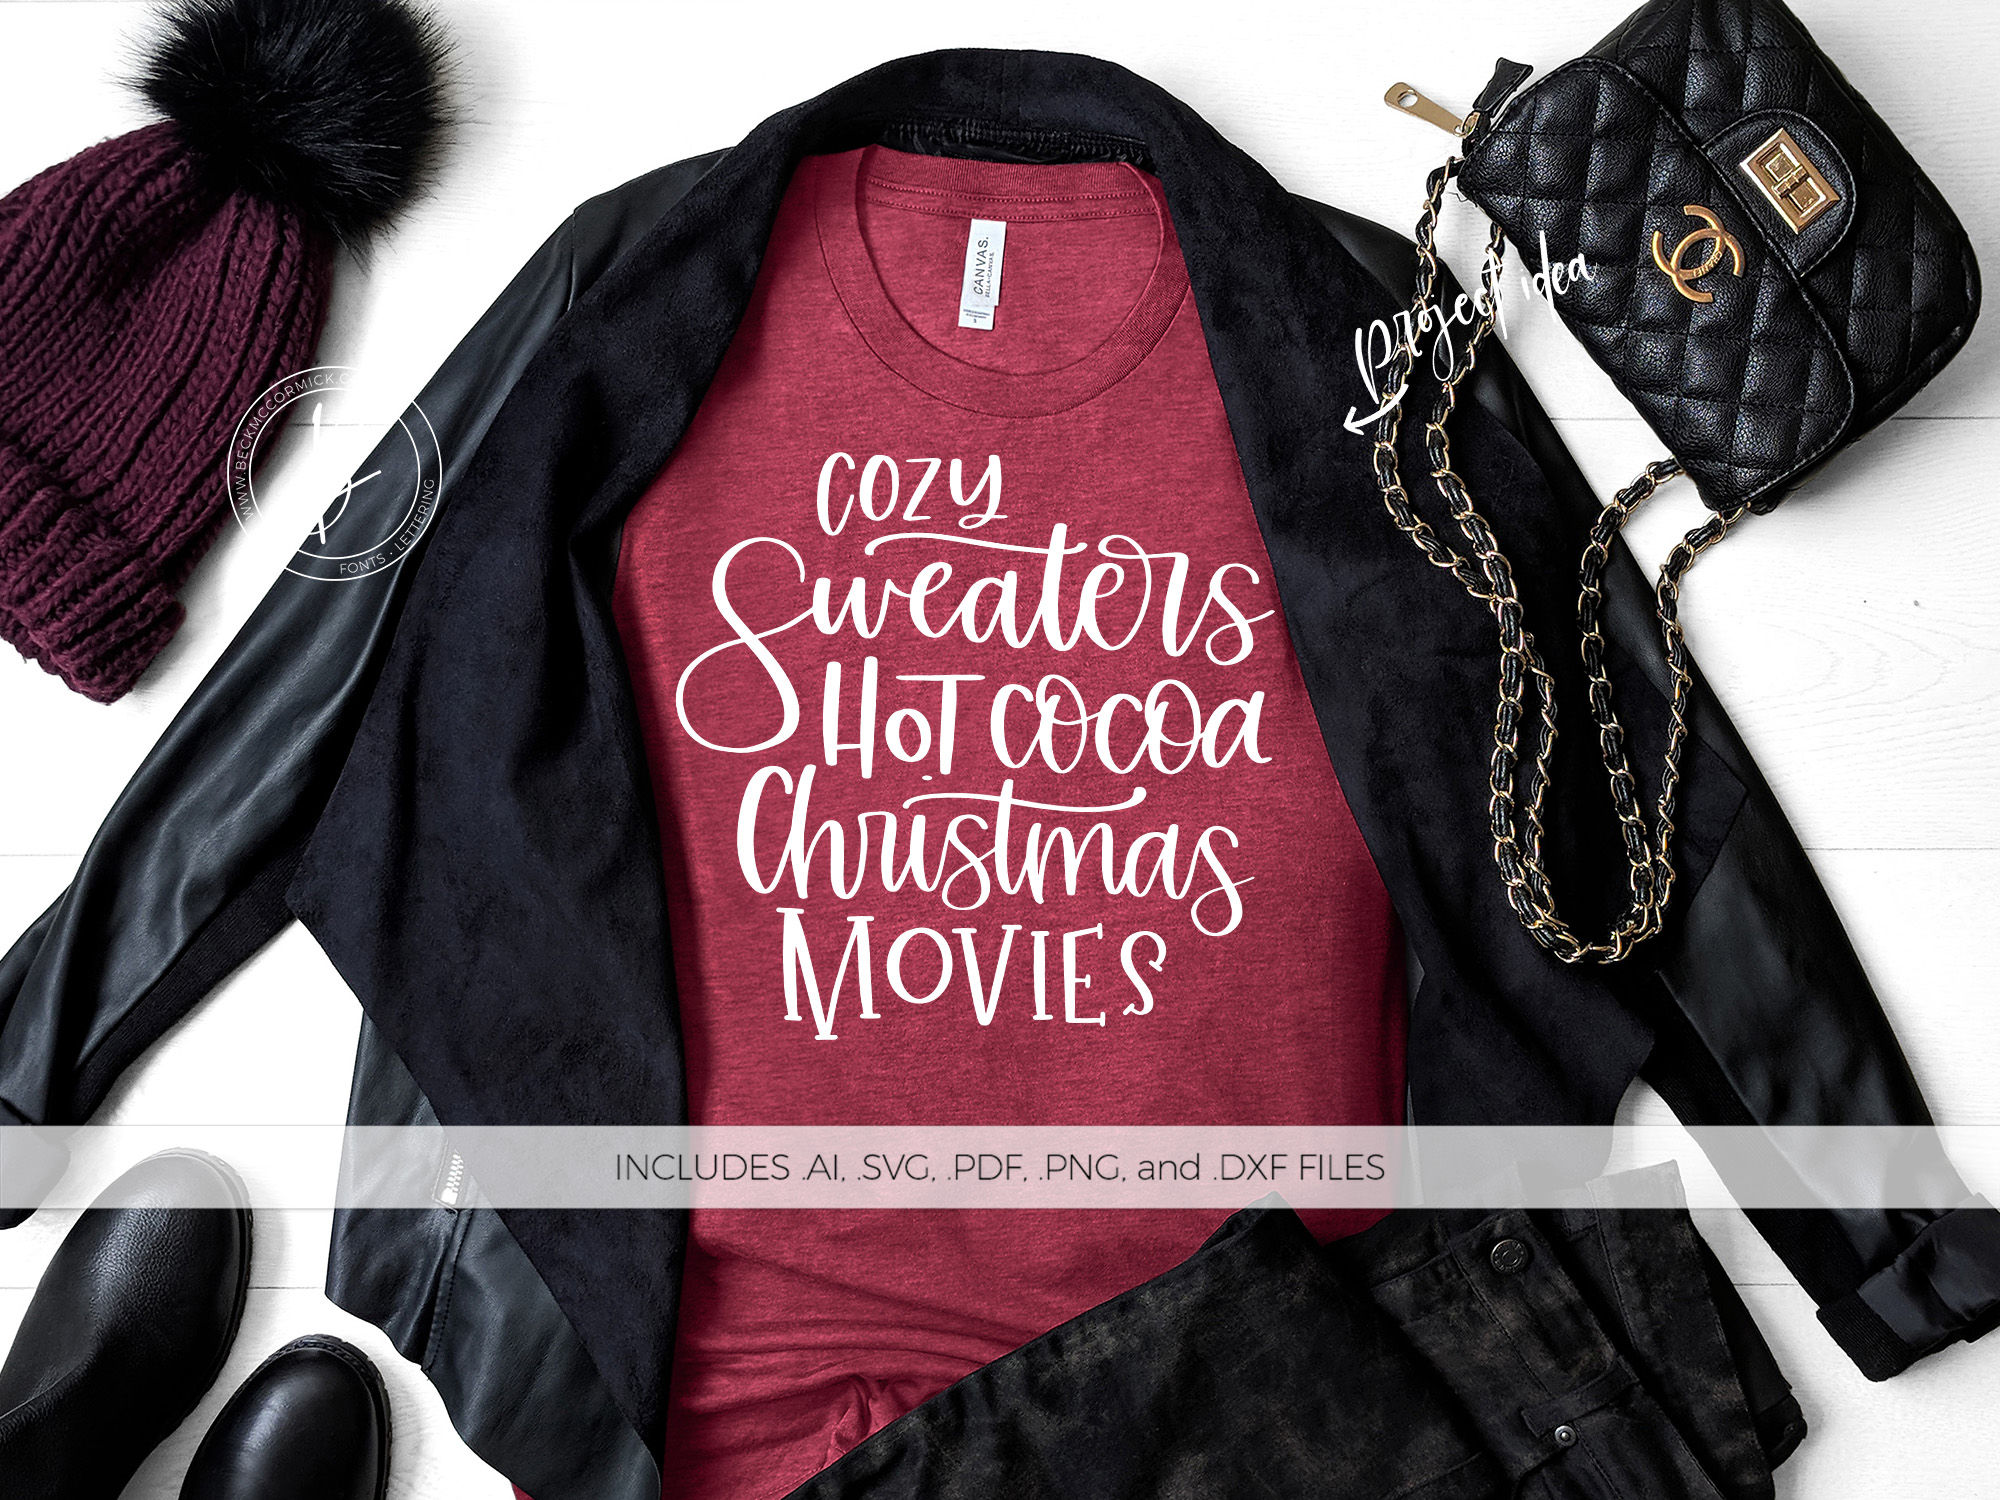 Download Free Cozy Sweaters Hot Cocoa Christmas Movies Graphic By for Cricut Explore, Silhouette and other cutting machines.